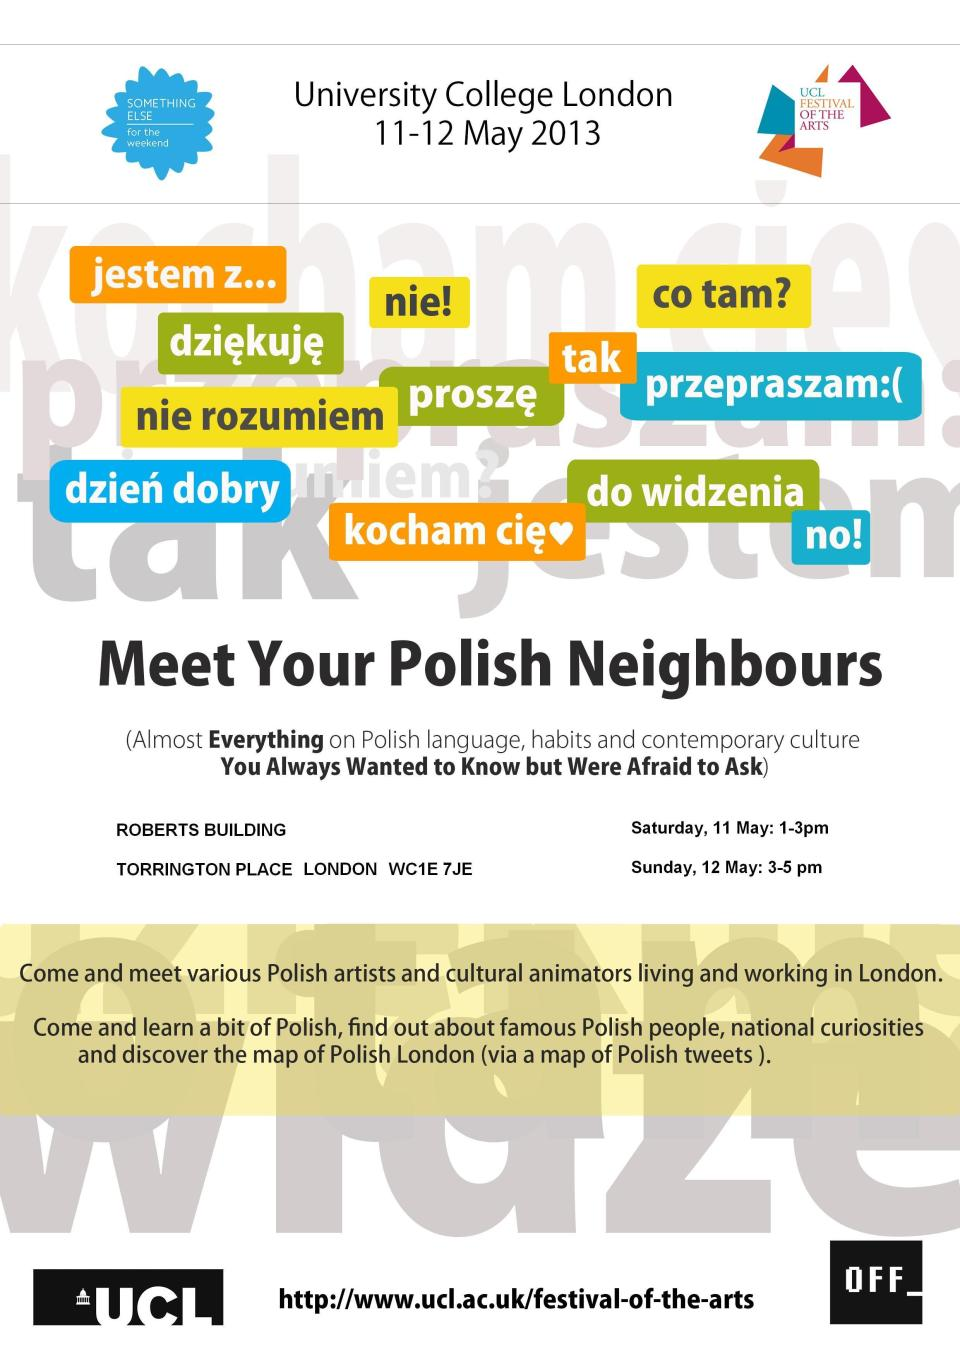 meet your polish neighbours POSTER_final 25.04